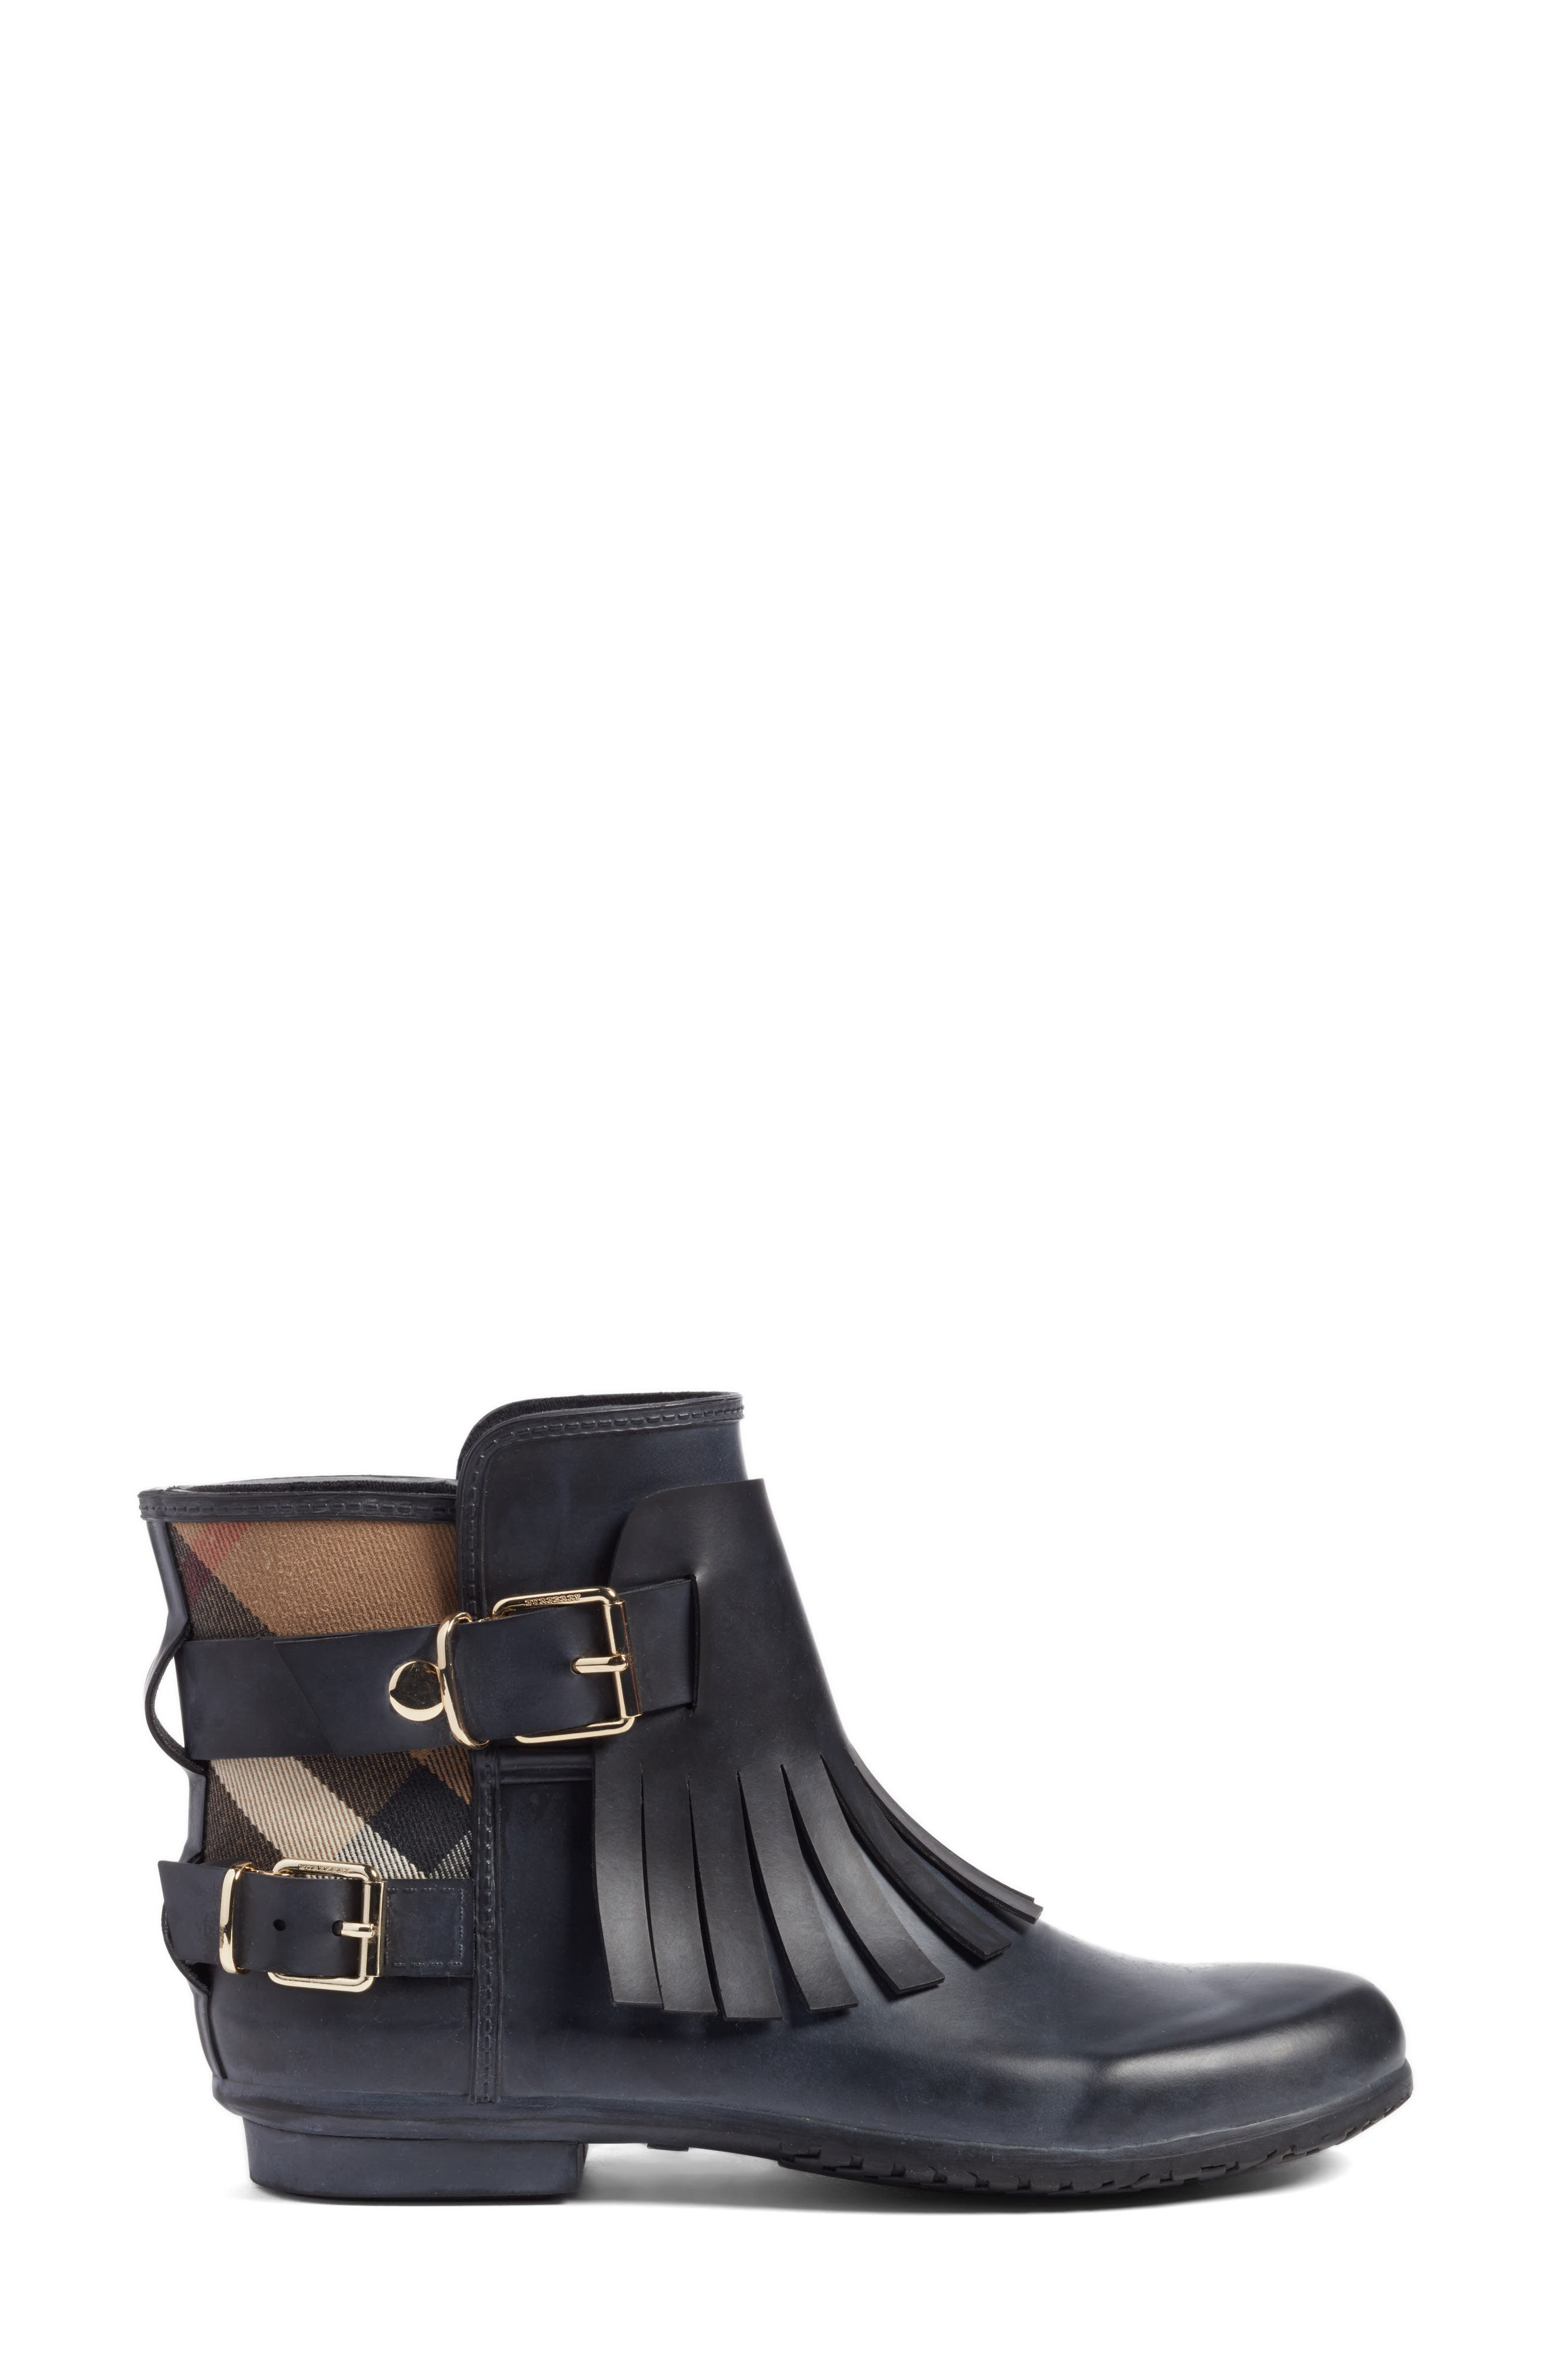 Alternate Image 3  - Burberry Fringe Short Rain Bootie (Women)